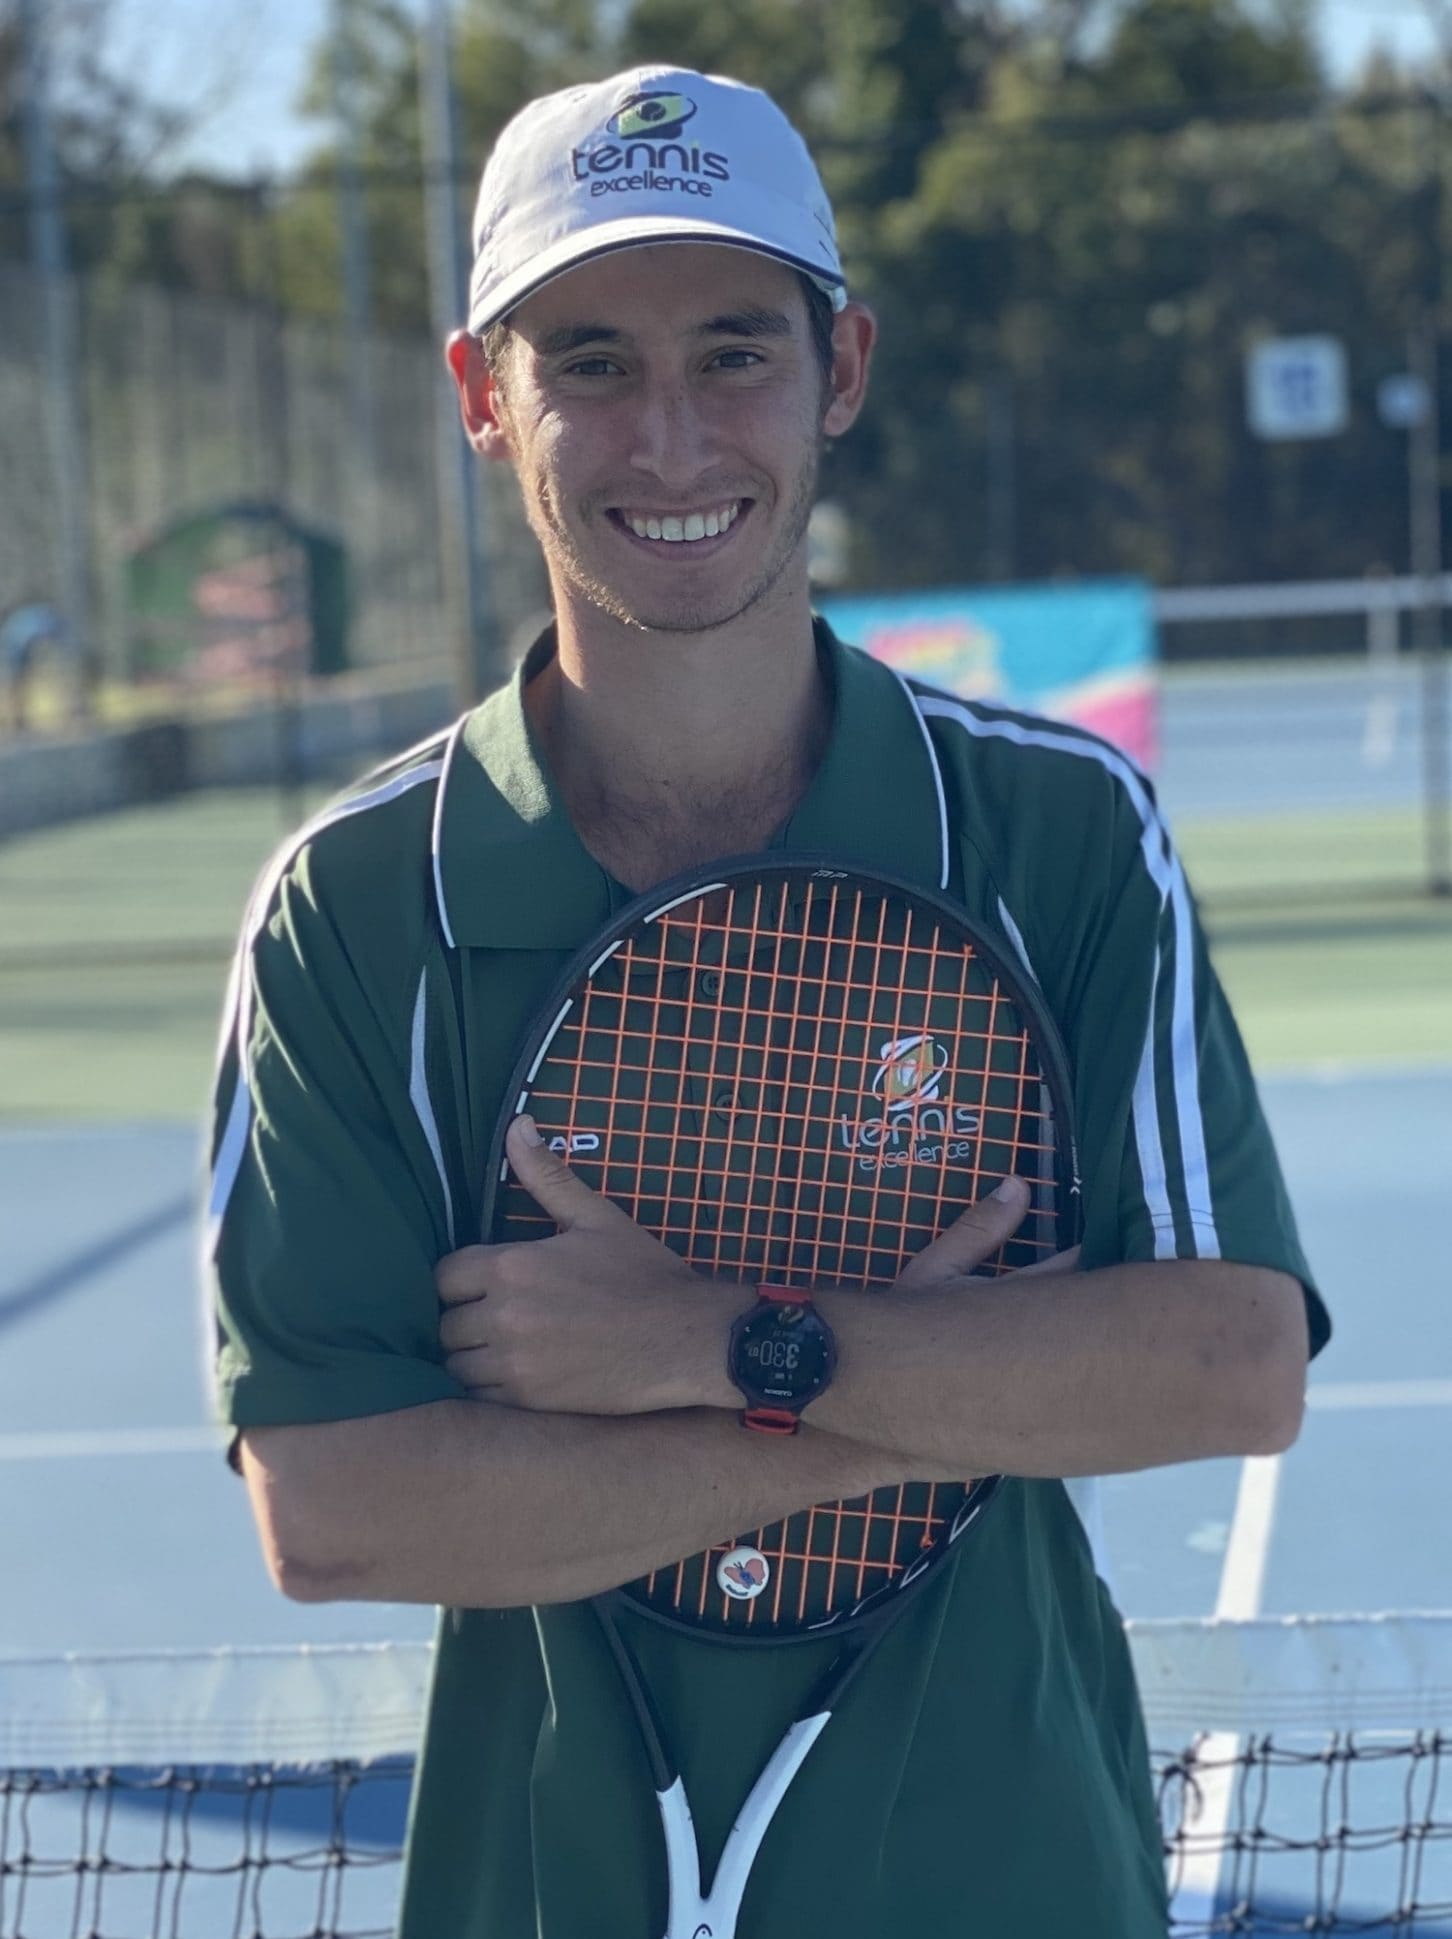 https://www.tennisexcellence.com.au/wp-content/uploads/2020/05/Coach_Mitch-Vernon-scaled-e1588672164922.jpeg